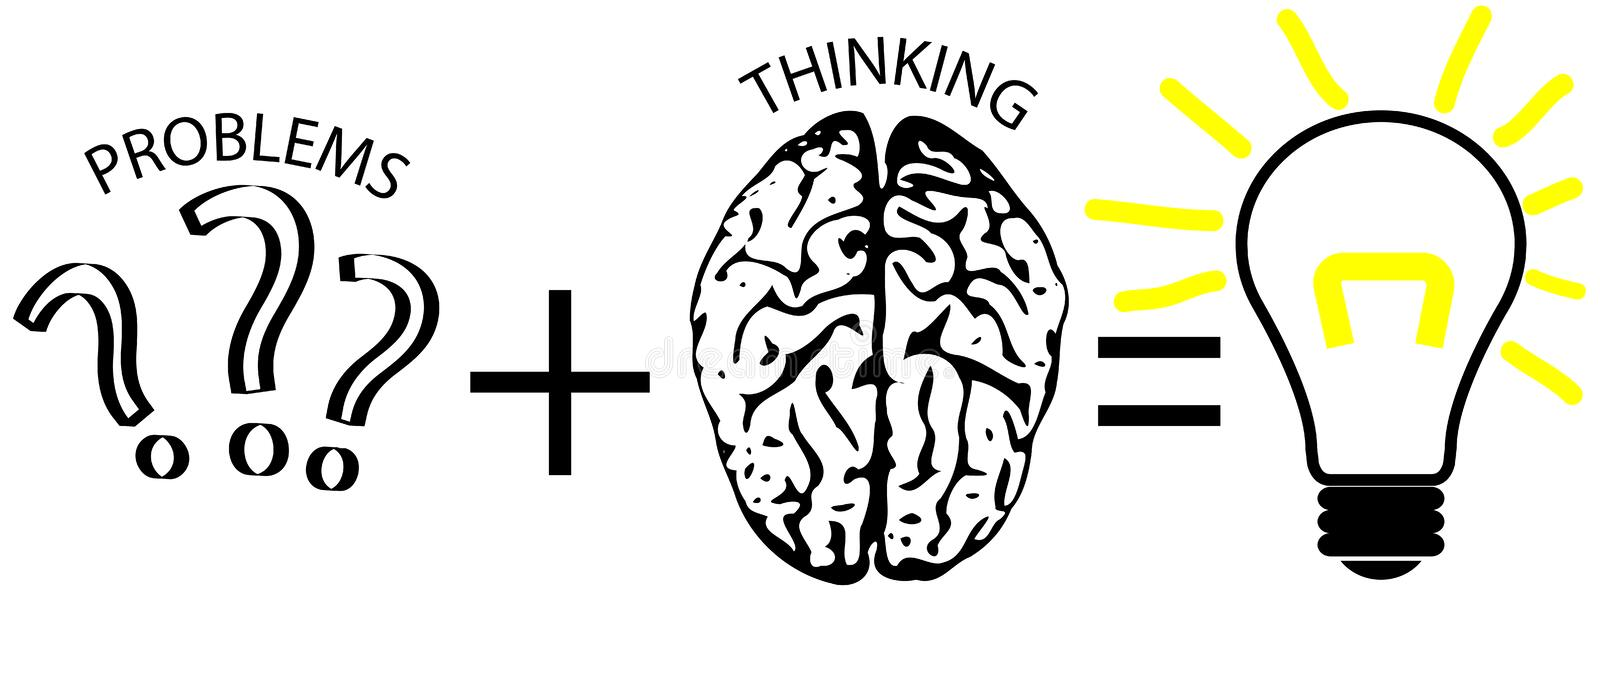 Problem Solving Diagram. With question marks, brain and lightbulb to illustrate problems and solutions stock illustration